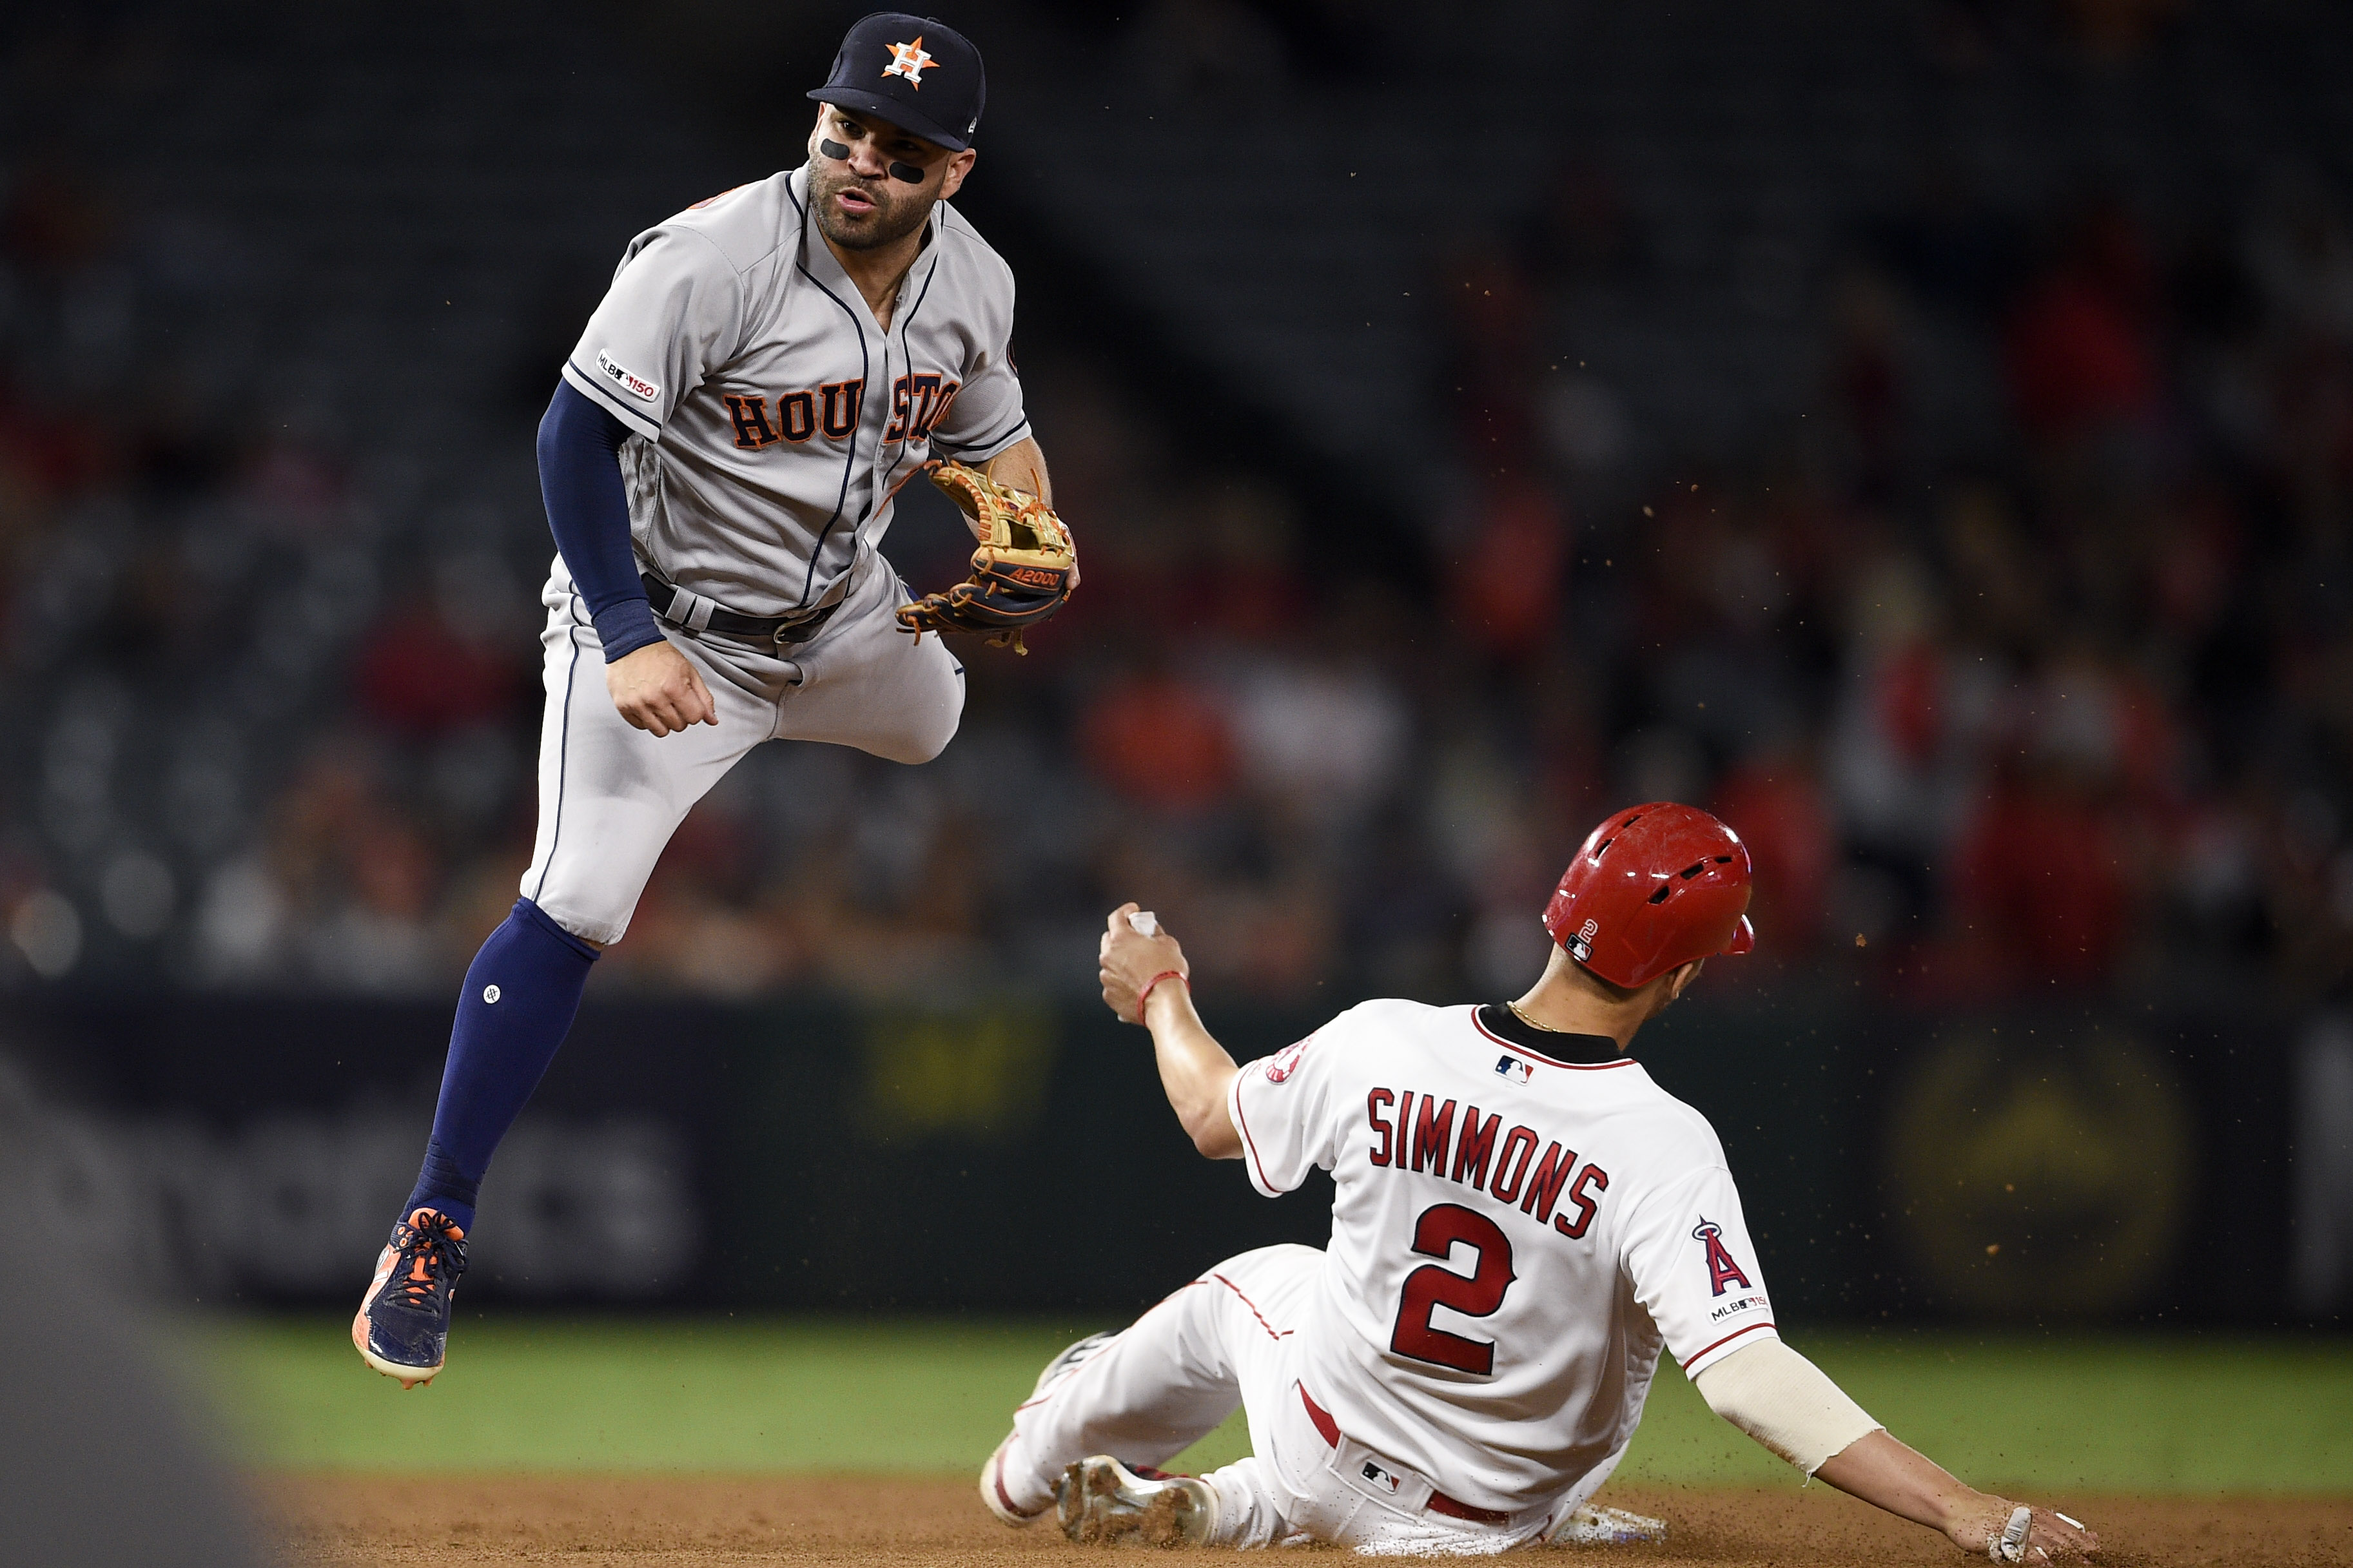 Jose Altuve jumps to avoid the slide of Andrelton Simmons during a force out at second base.  Simmons is wearing the white uniform with red trim.  Altuve is wearing the gray uniform with blue trim.